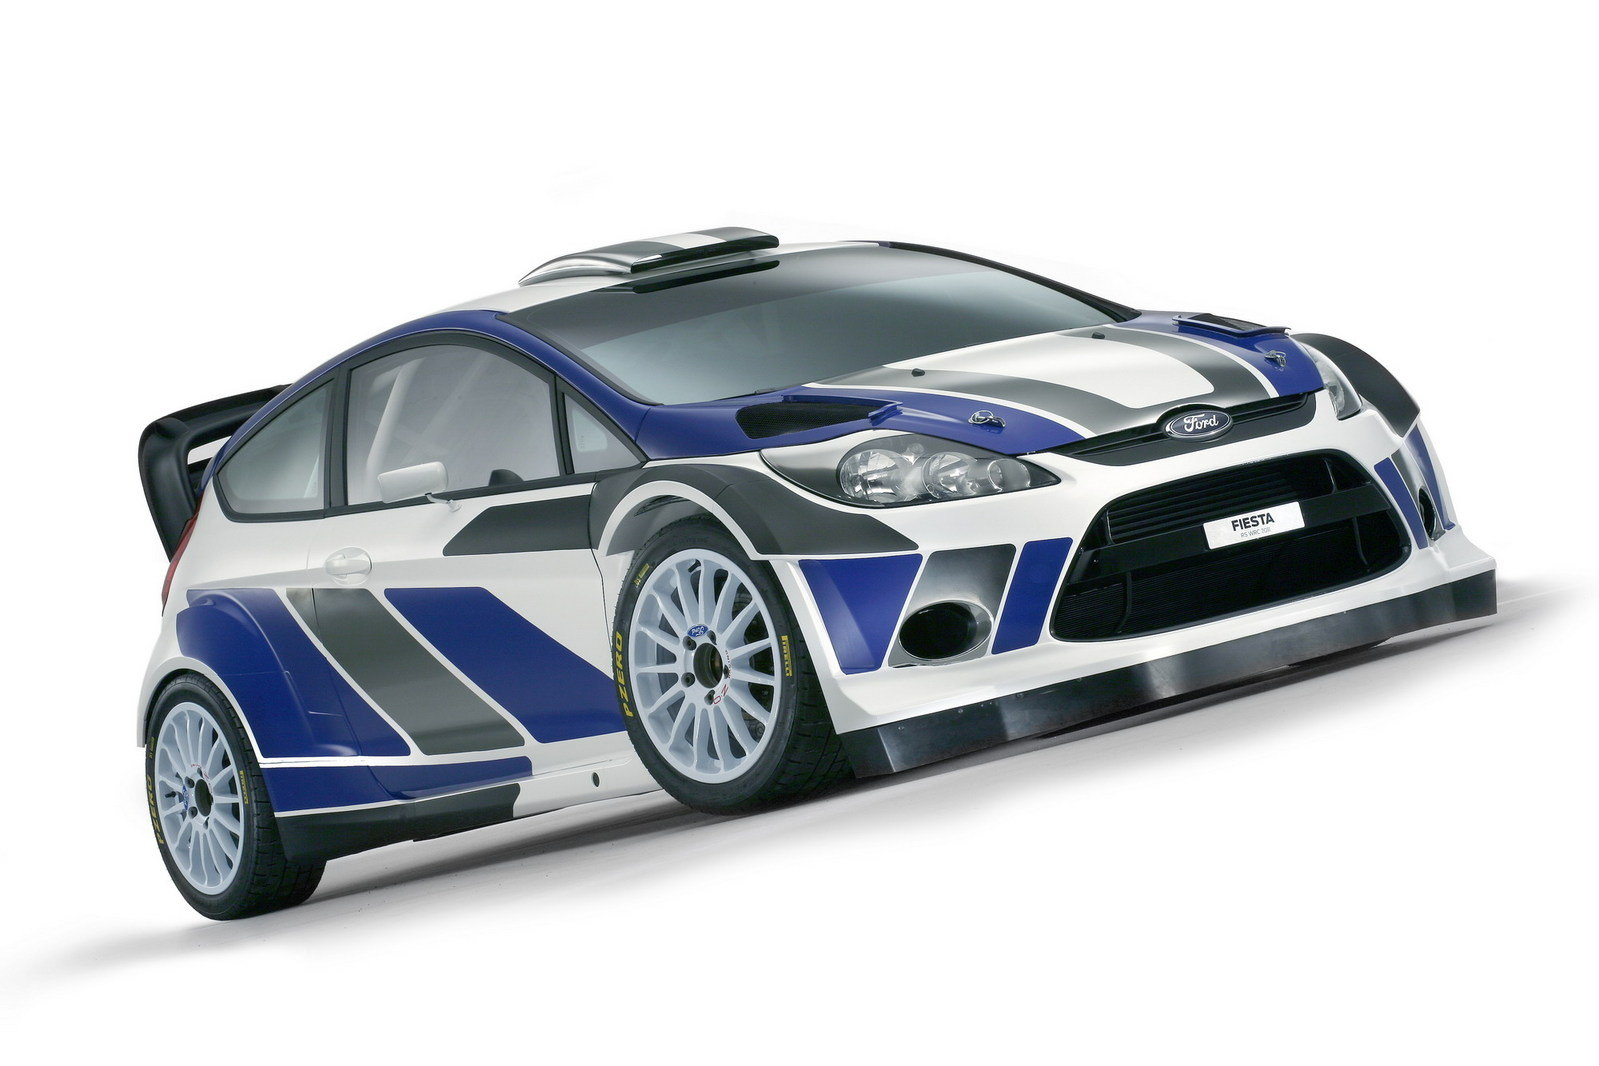 2011 ford fiesta rs wrc picture 376137 car review top speed. Black Bedroom Furniture Sets. Home Design Ideas